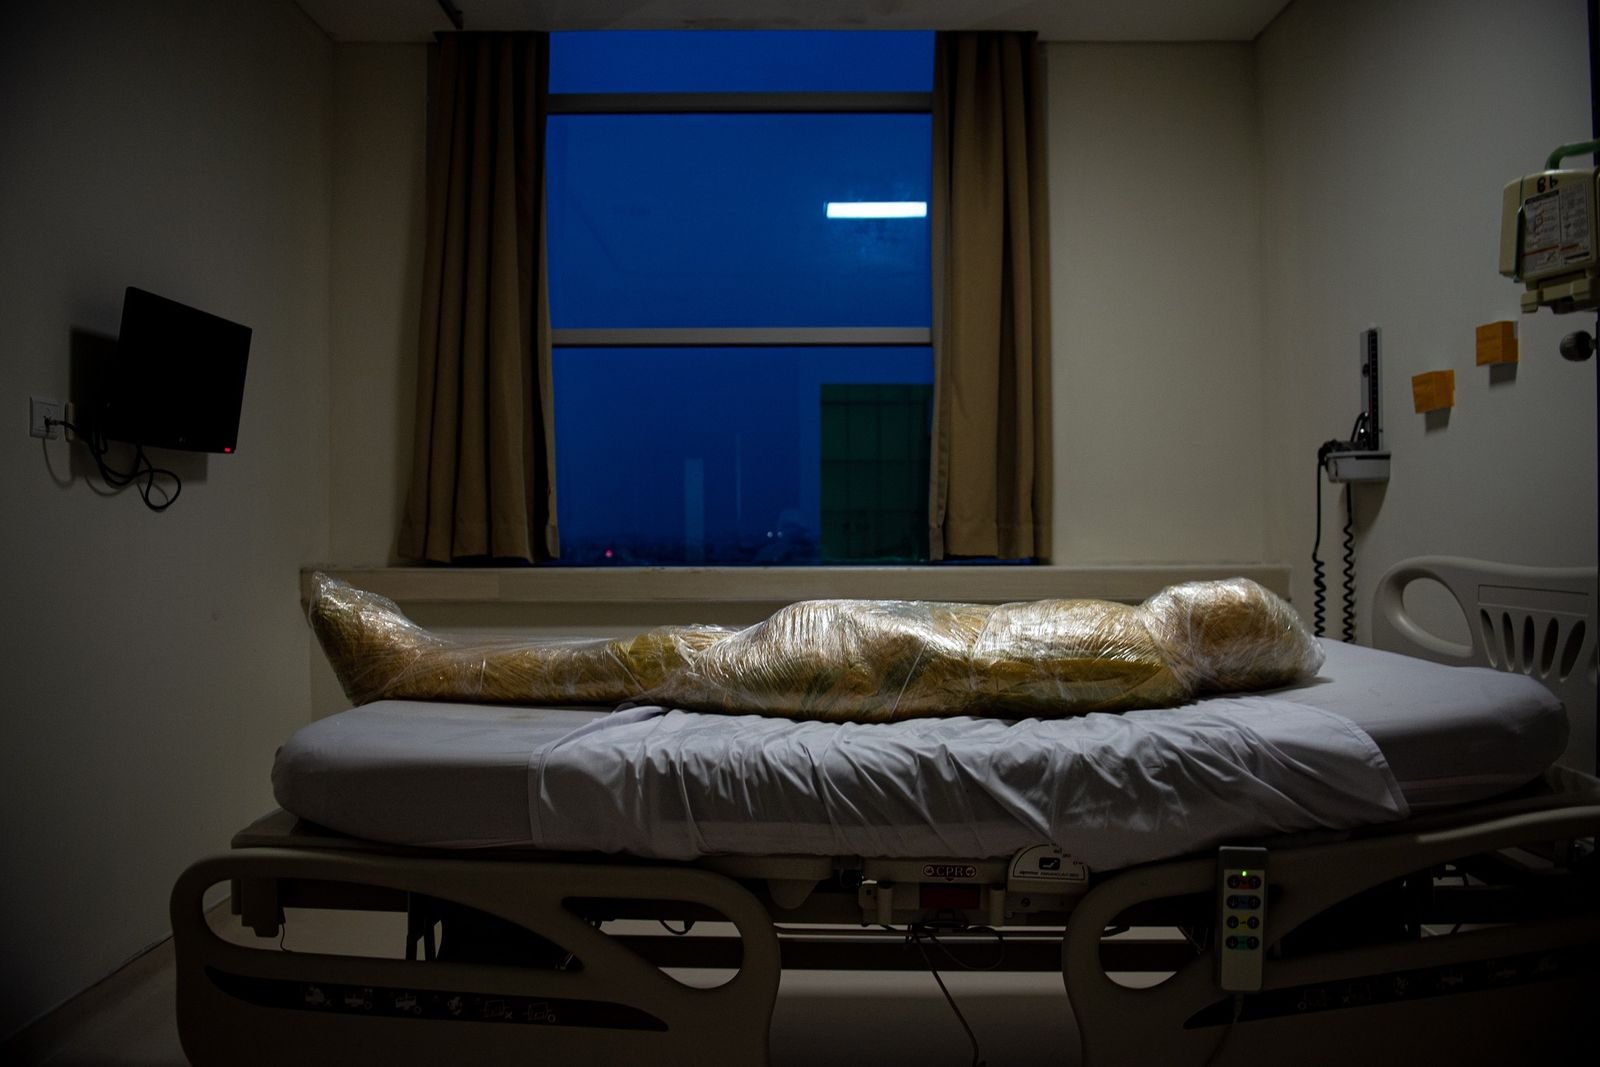 The body of a suspected covid-19 victim lies in an indonesian hospital. After the patient died, ...